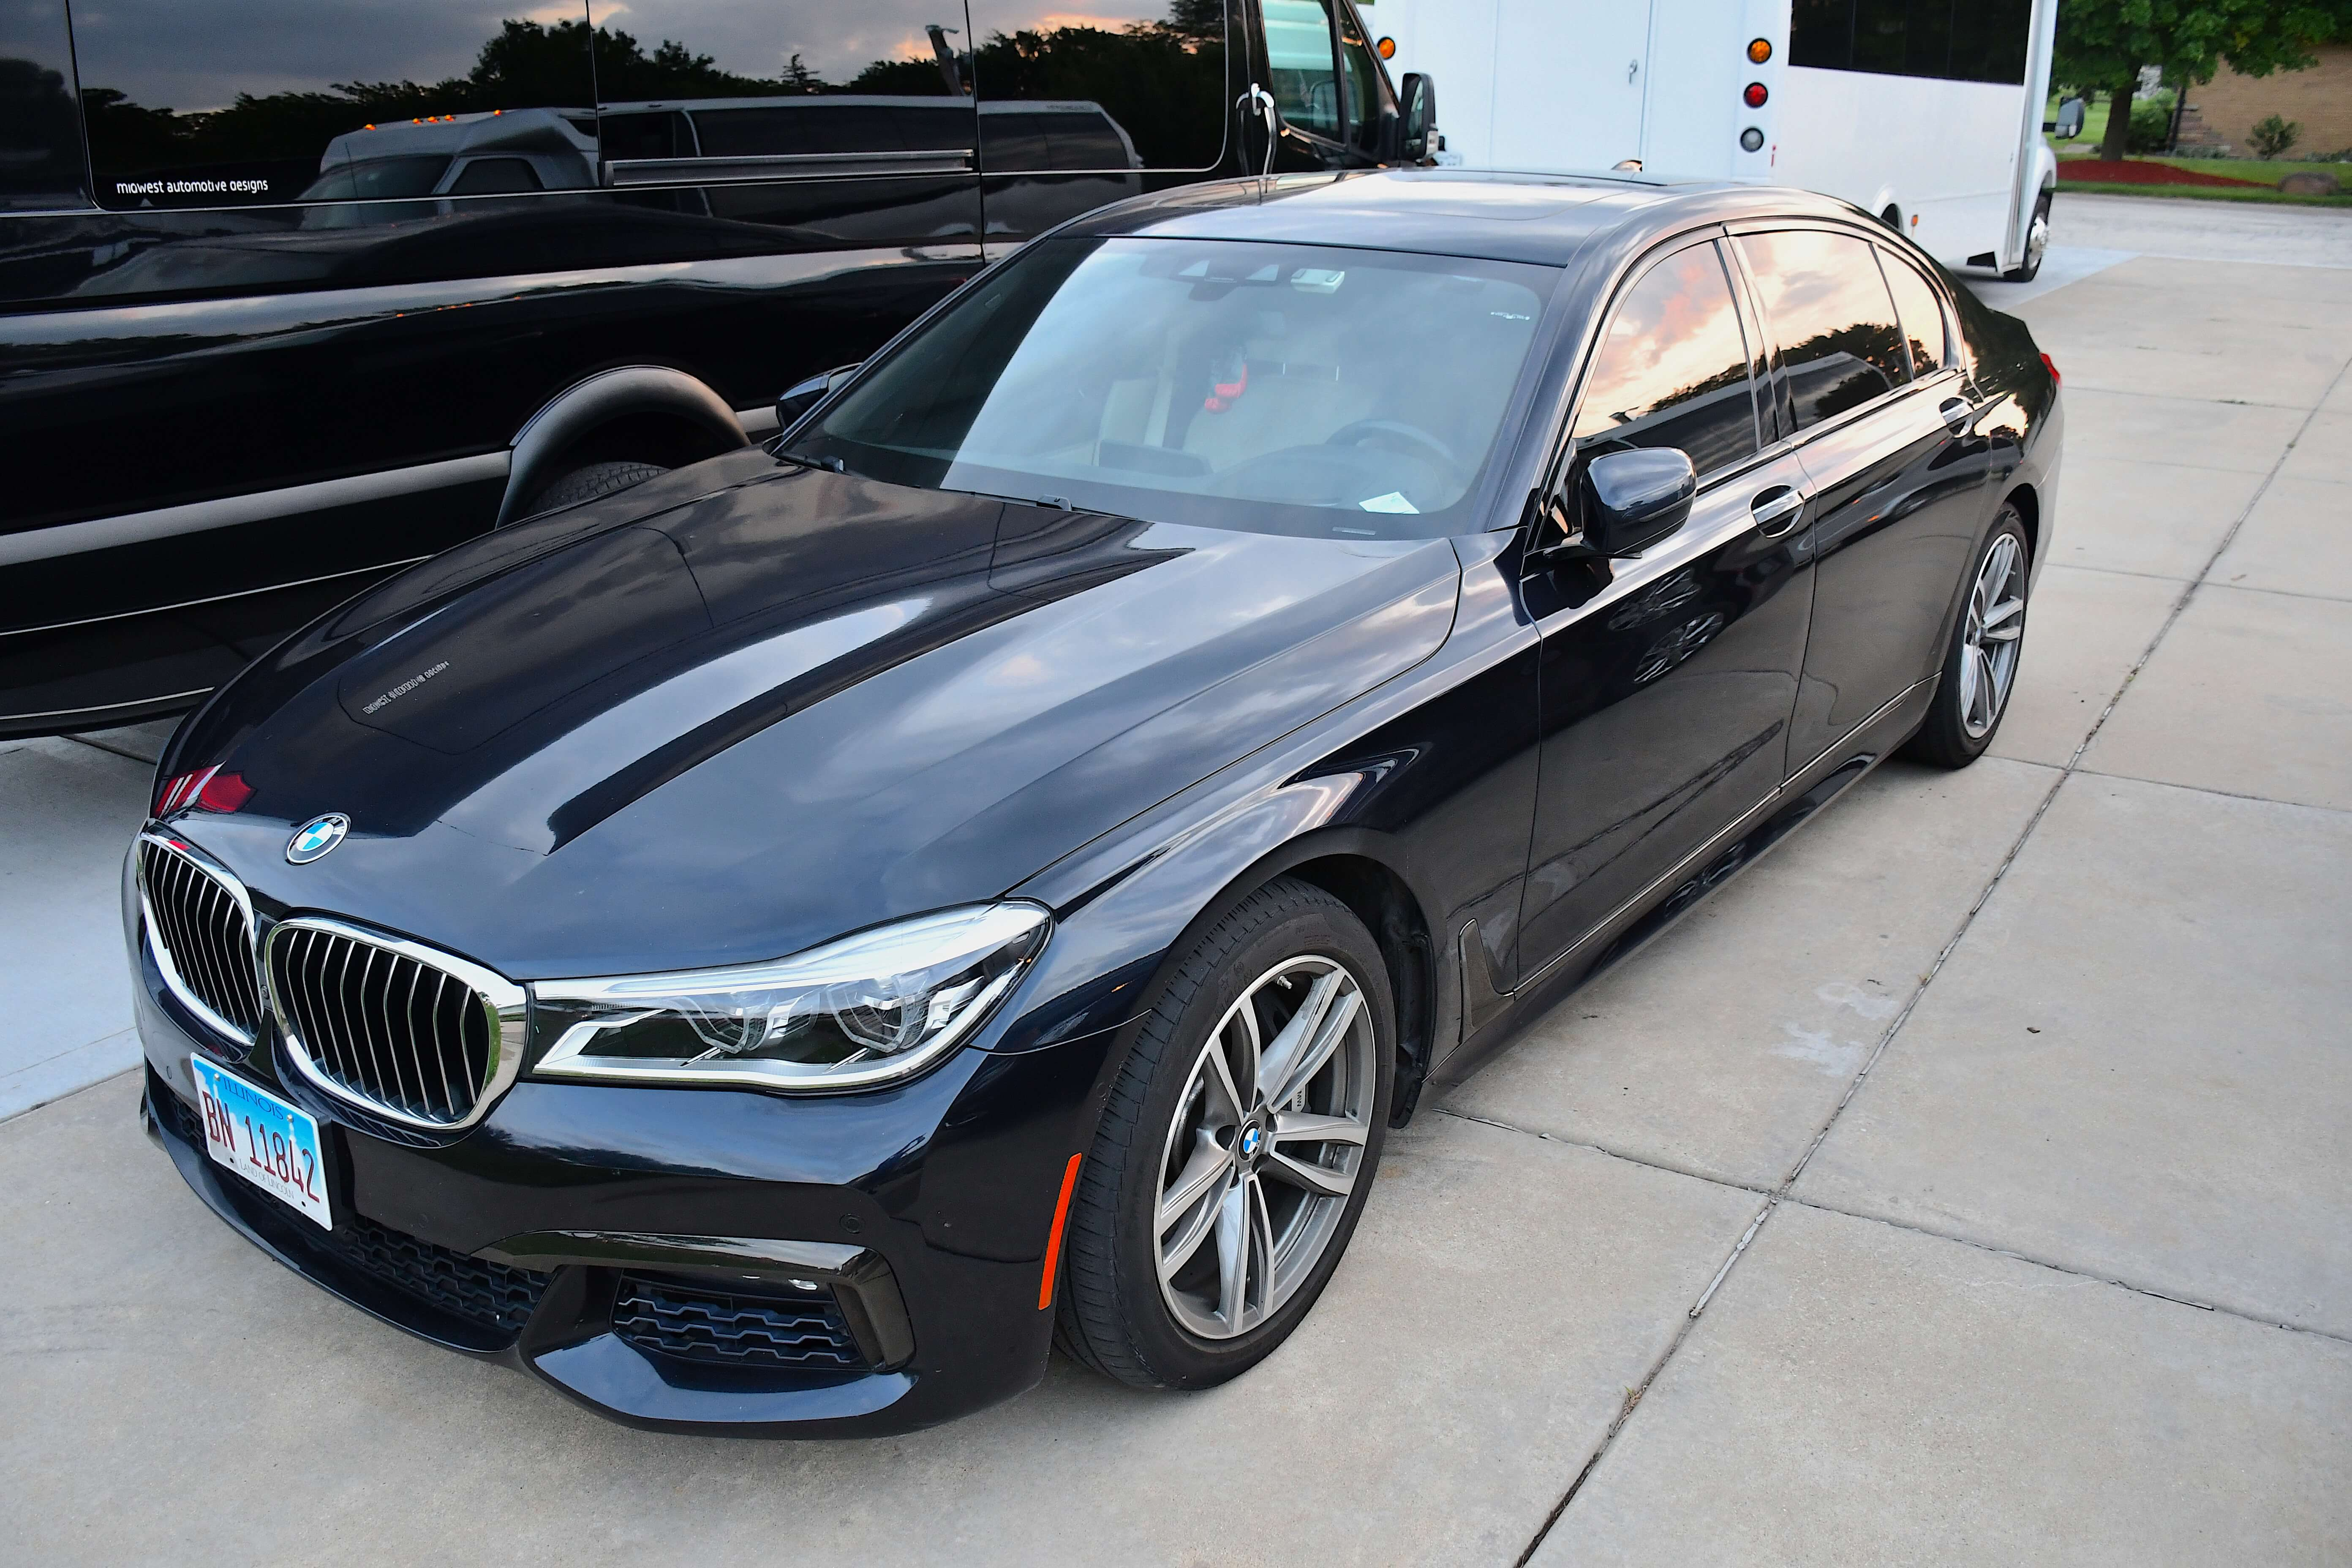 BMW provided by A Stars Limo